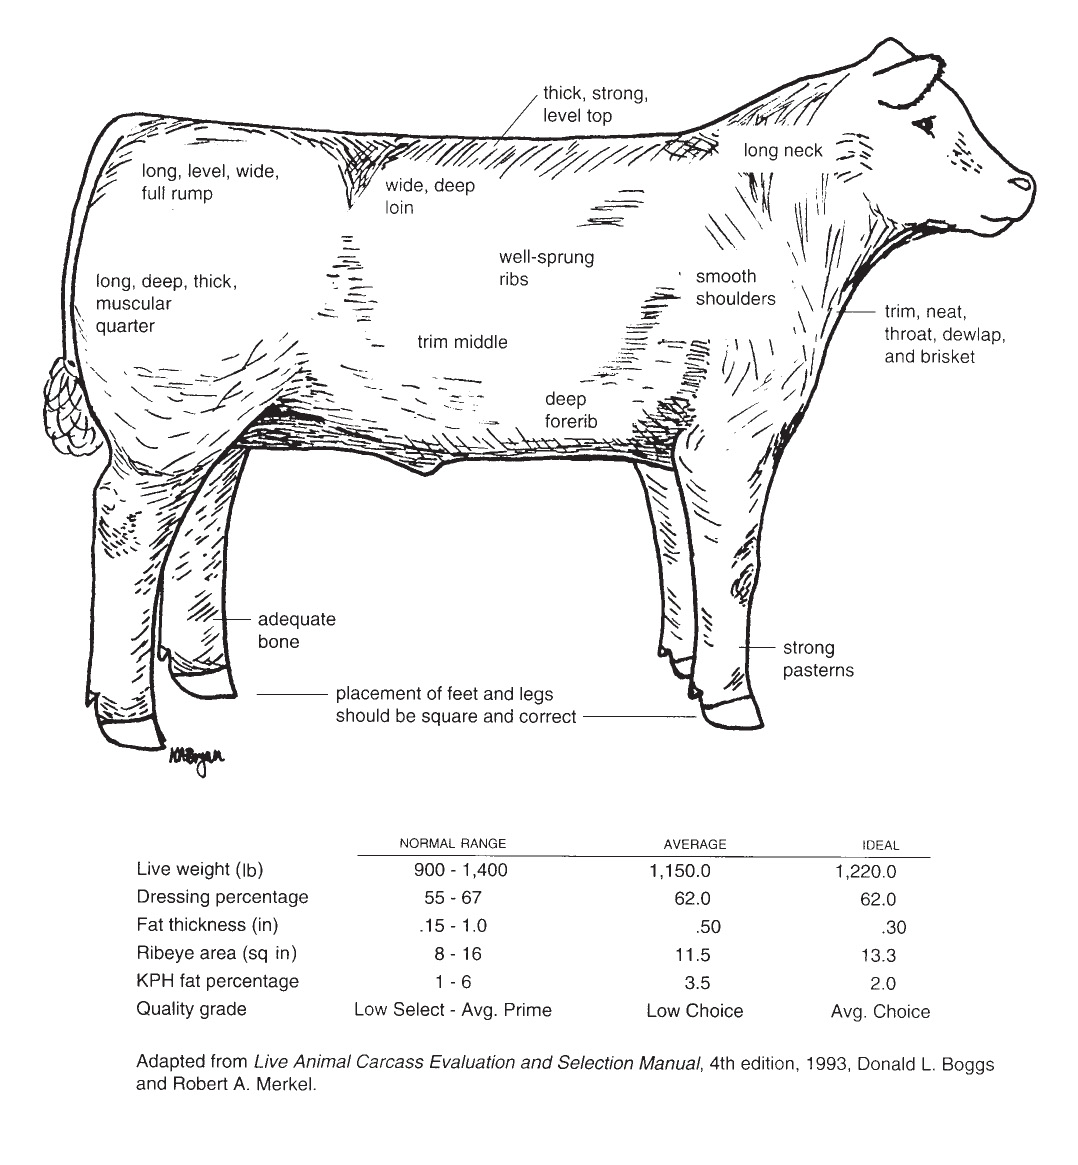 Diagram of the characteristics of an ideal market steer.